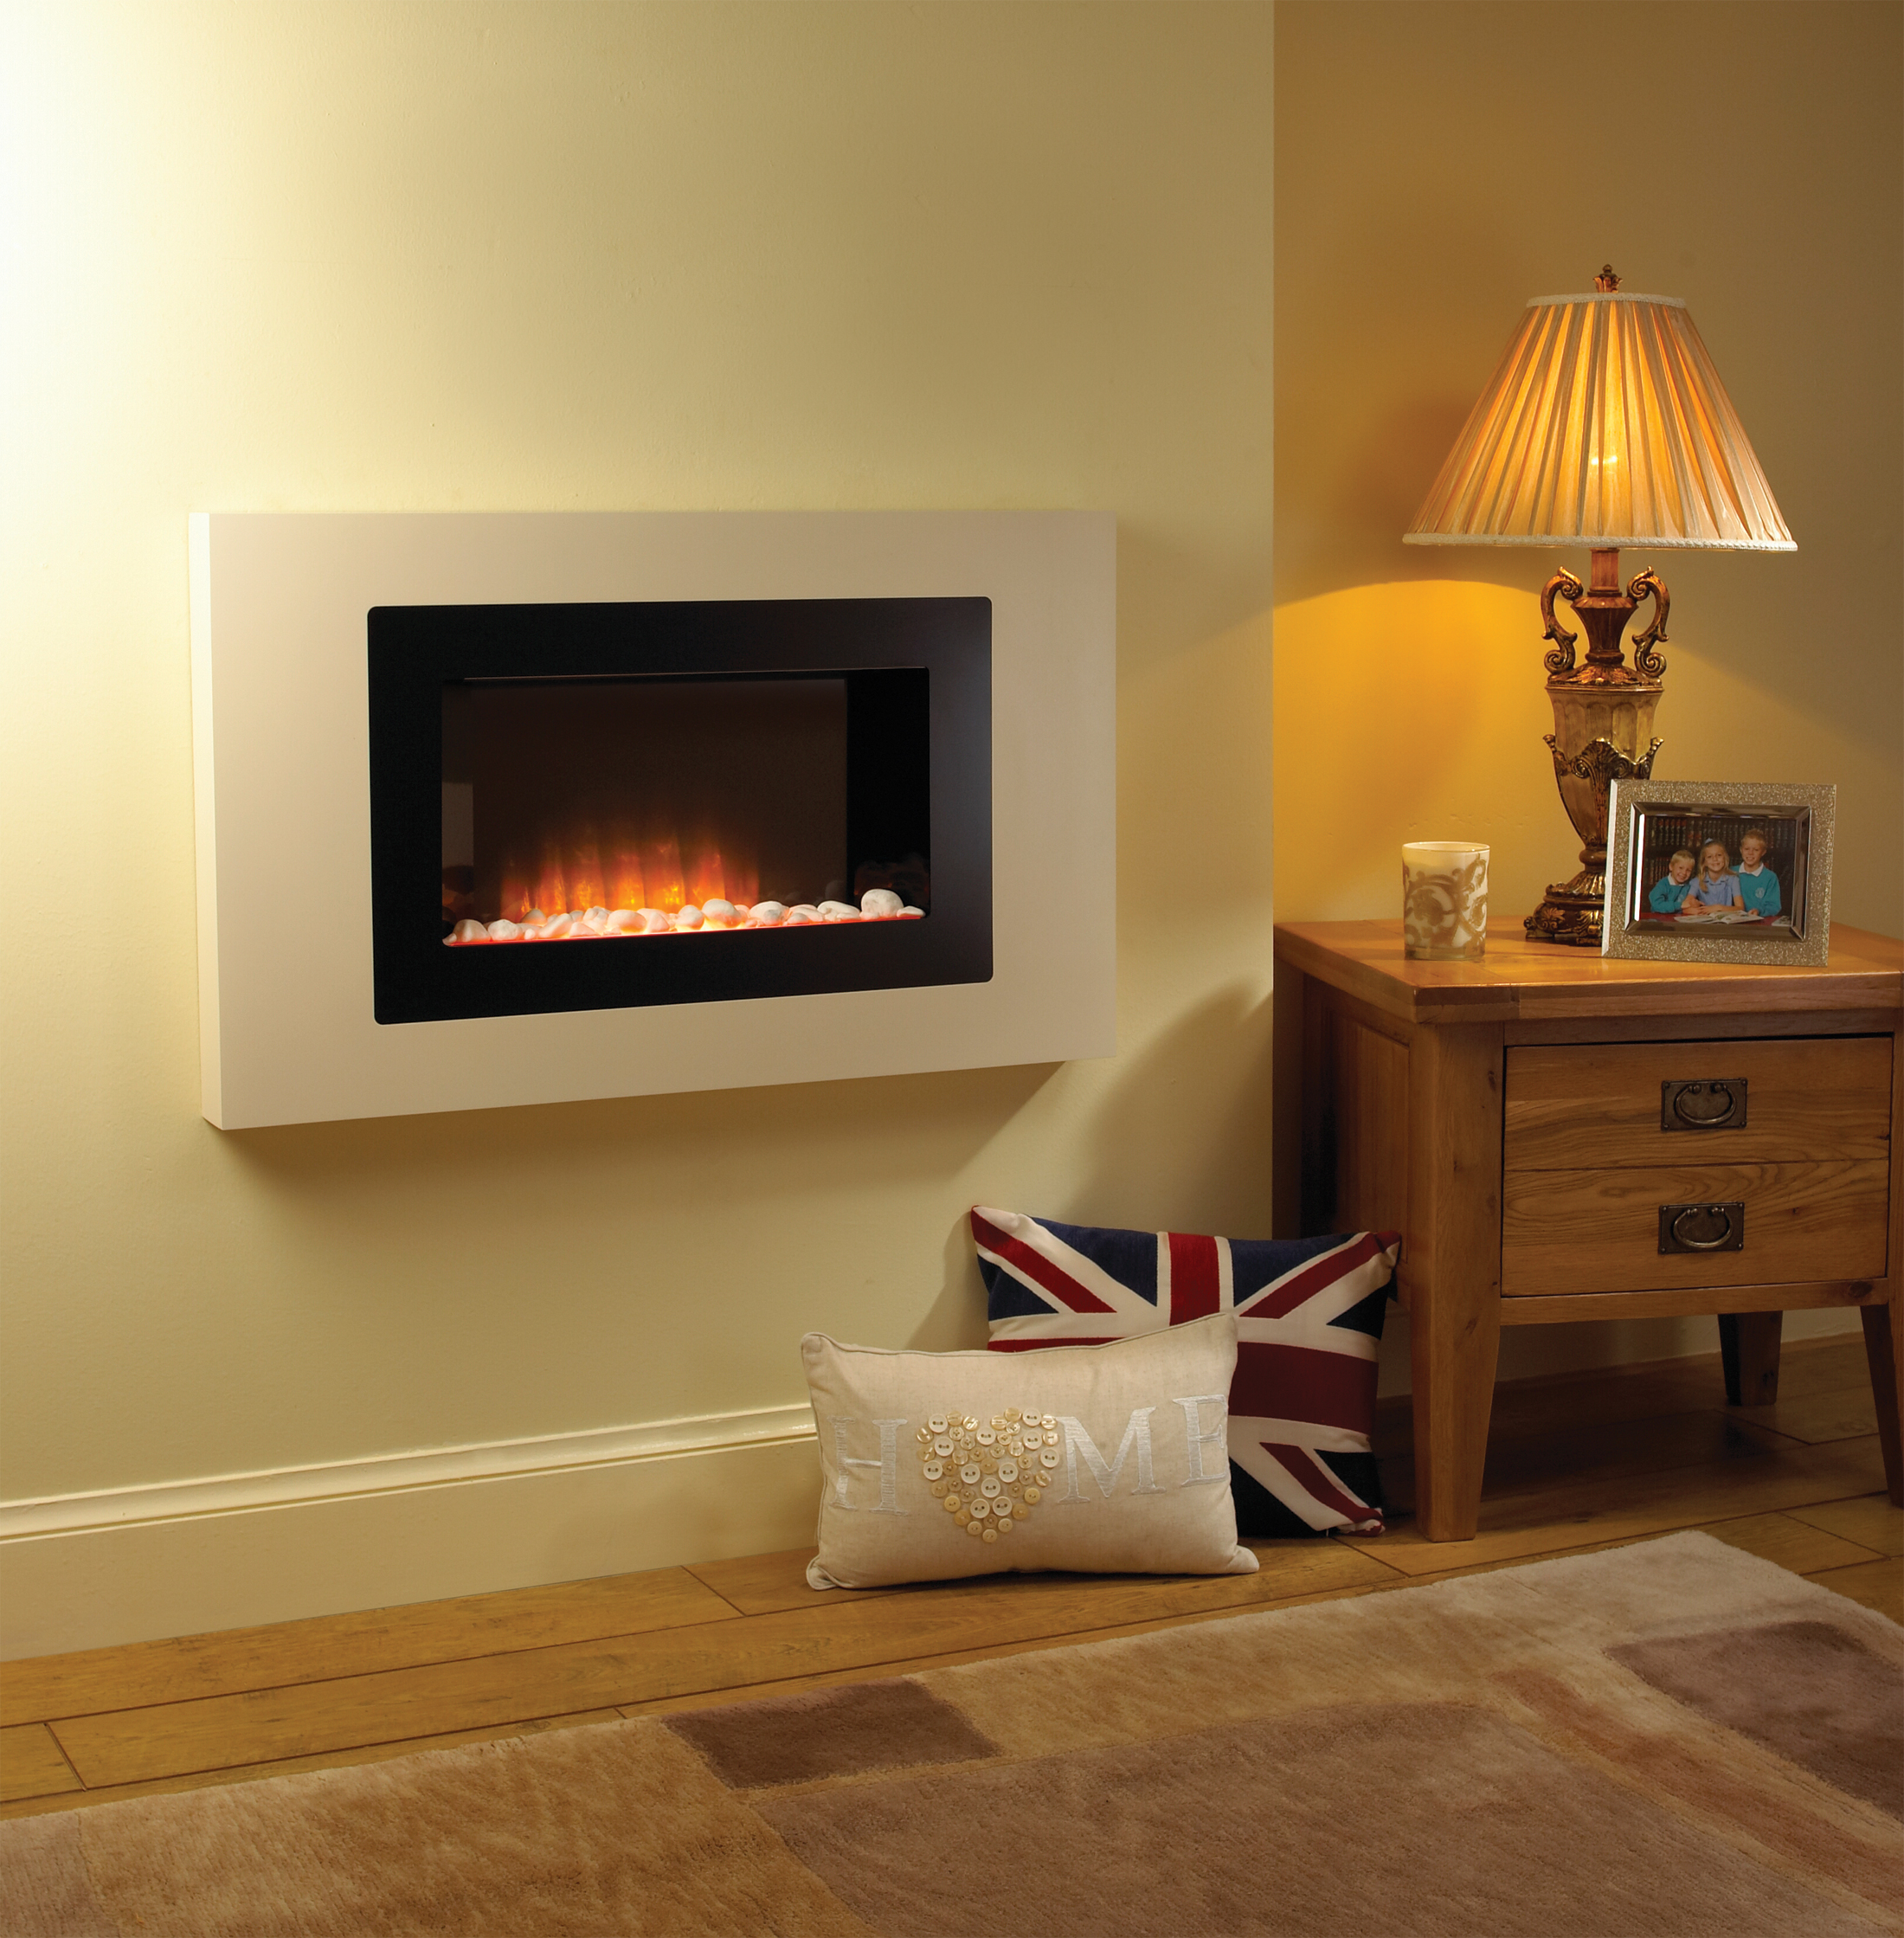 store gas best residence igne familyroomw fireplace family s toronto ferro md modern in room fireplaces electric wall